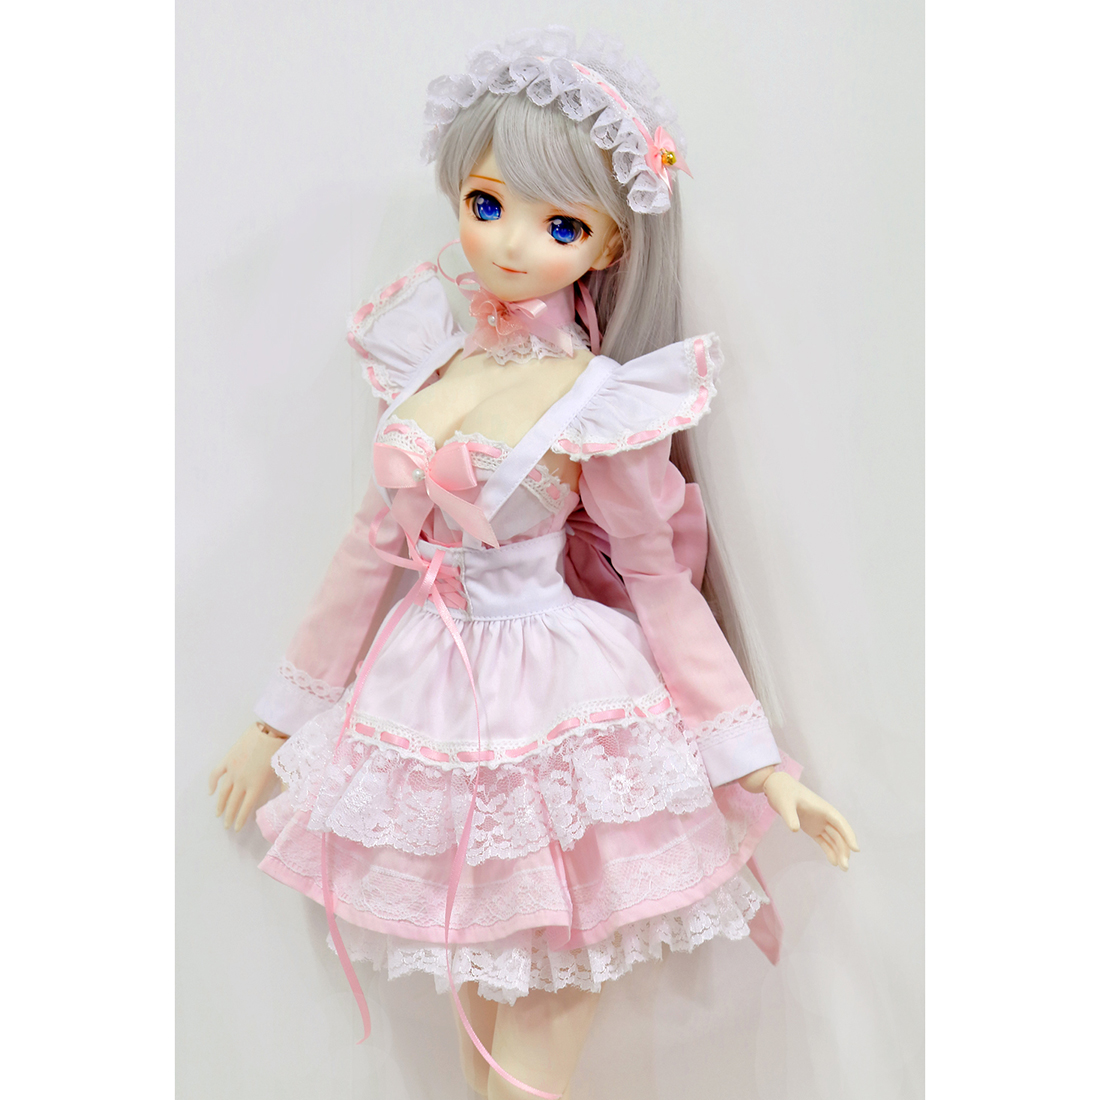 Bubble Dress Maid Outfit Clothes Set for 1/4 1/3 BJD Dolls - (Pink + White) No Doll